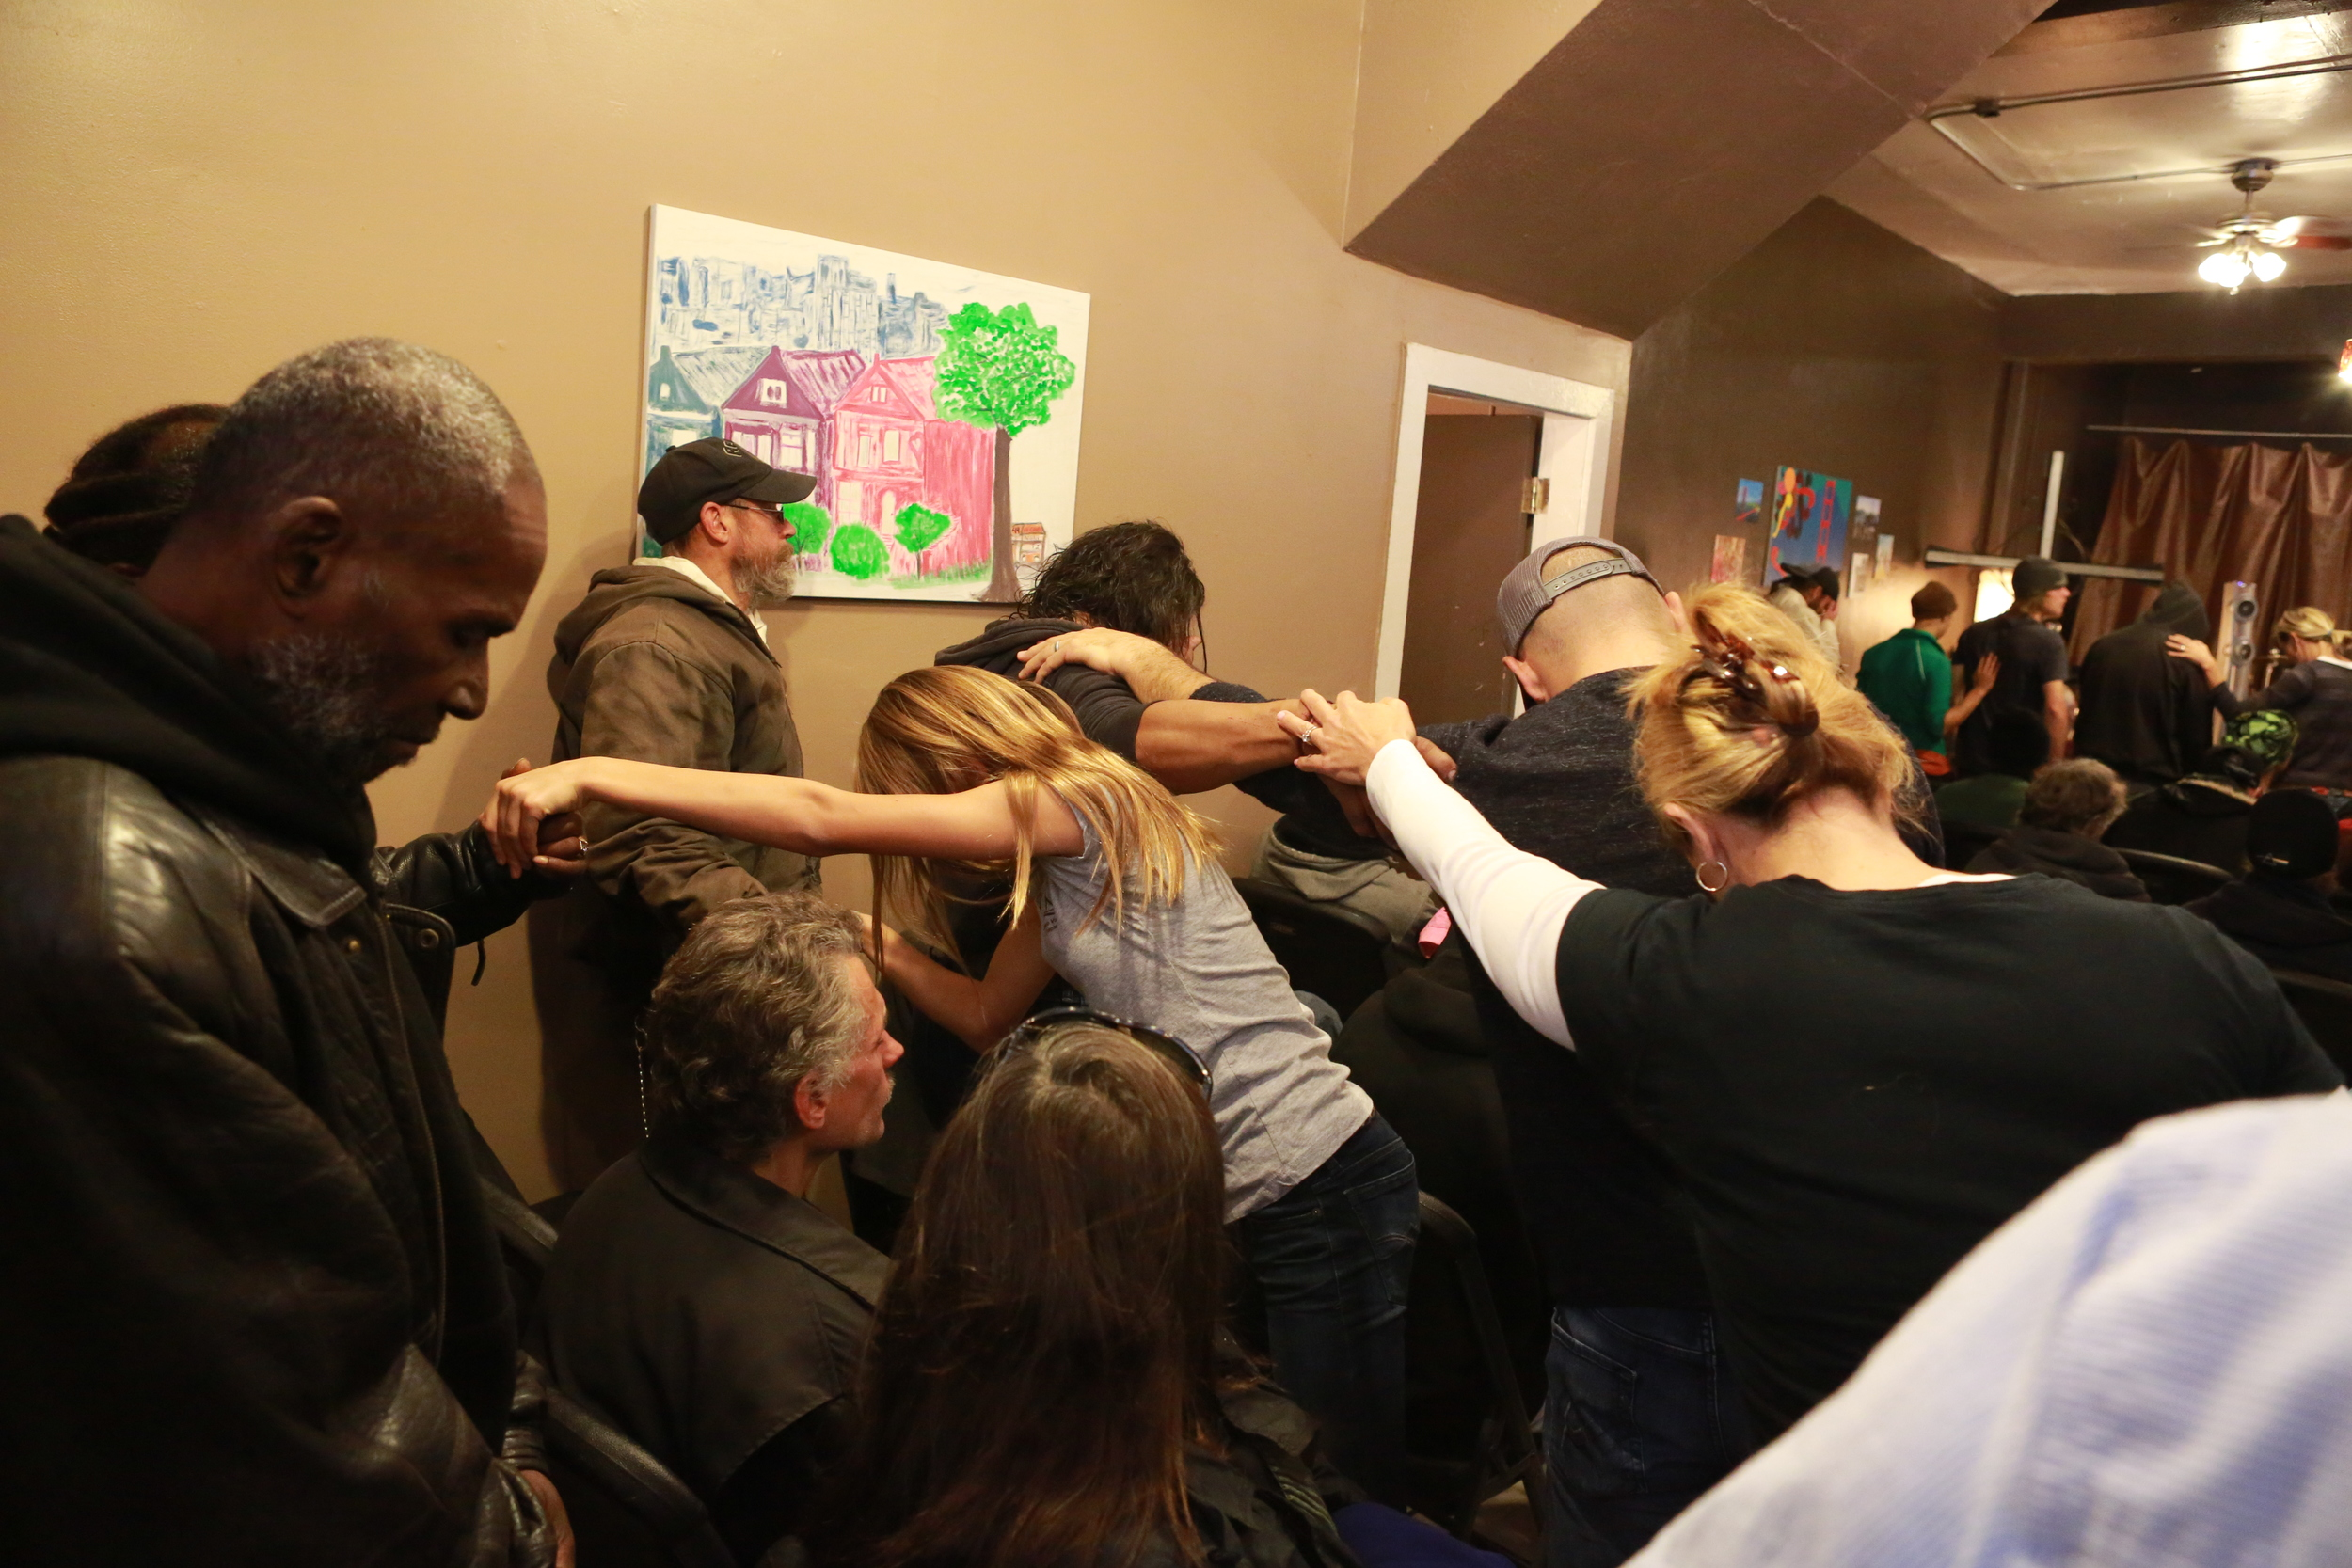 300 guests attended the sit-down Thanksgiving Meal. Here, they are praying for each other